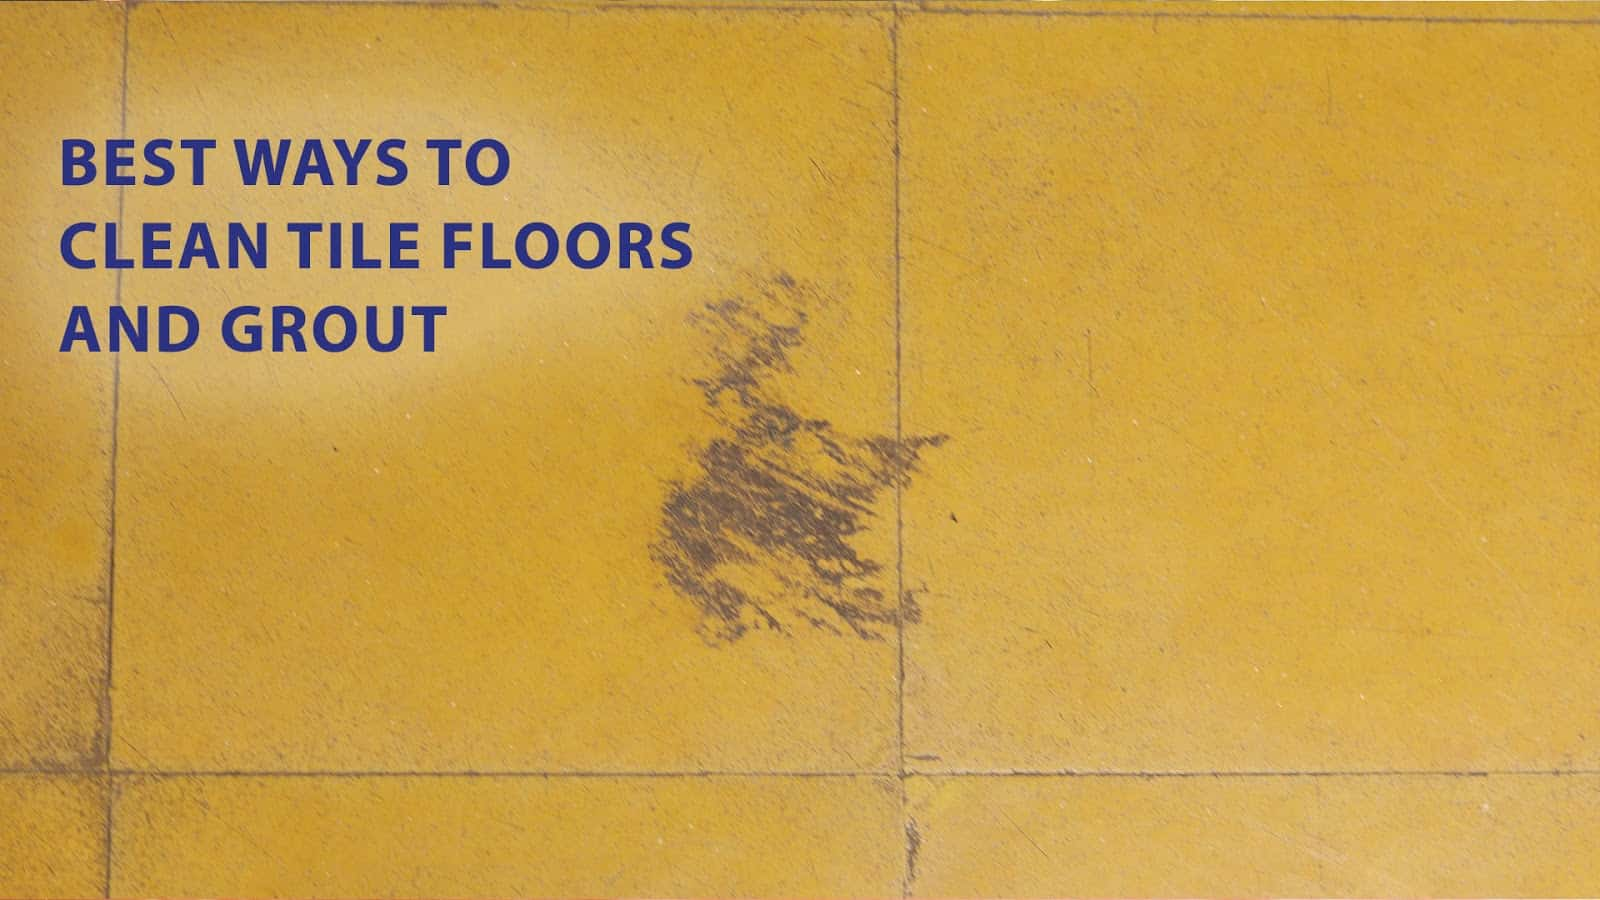 best ways to clean tile floors and grout